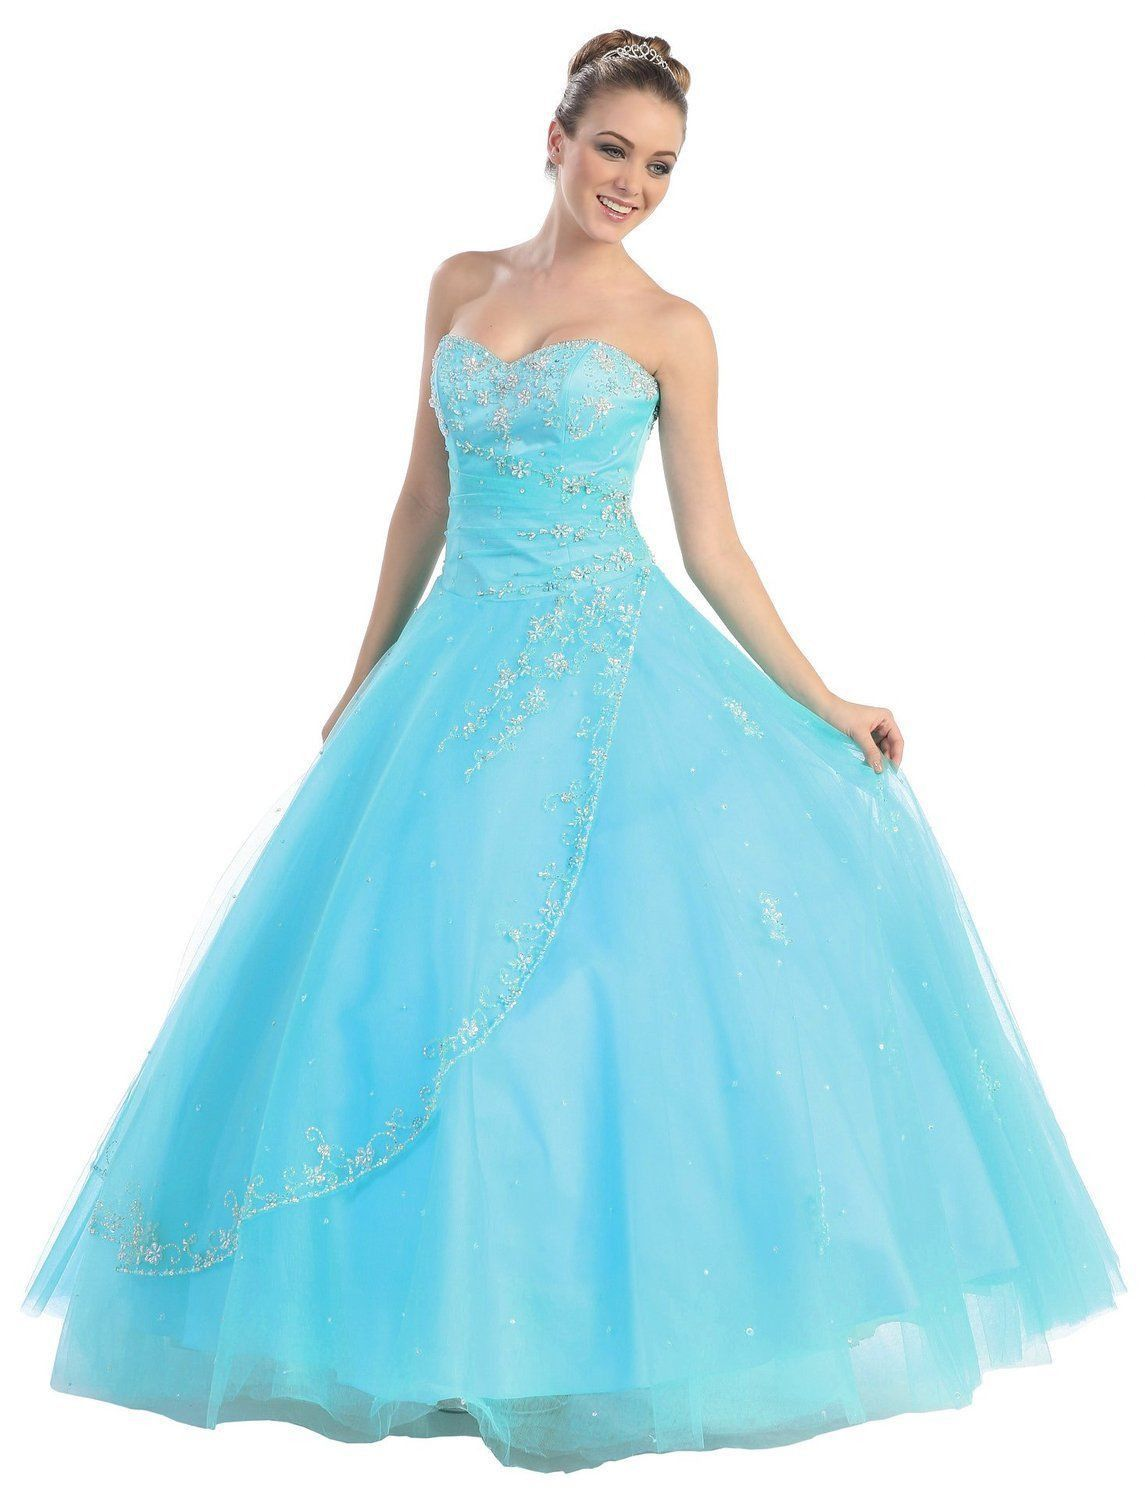 Quinceanera Long Ball Gown Sweet 16 Dress 2018 | Formal prom, Pink ...